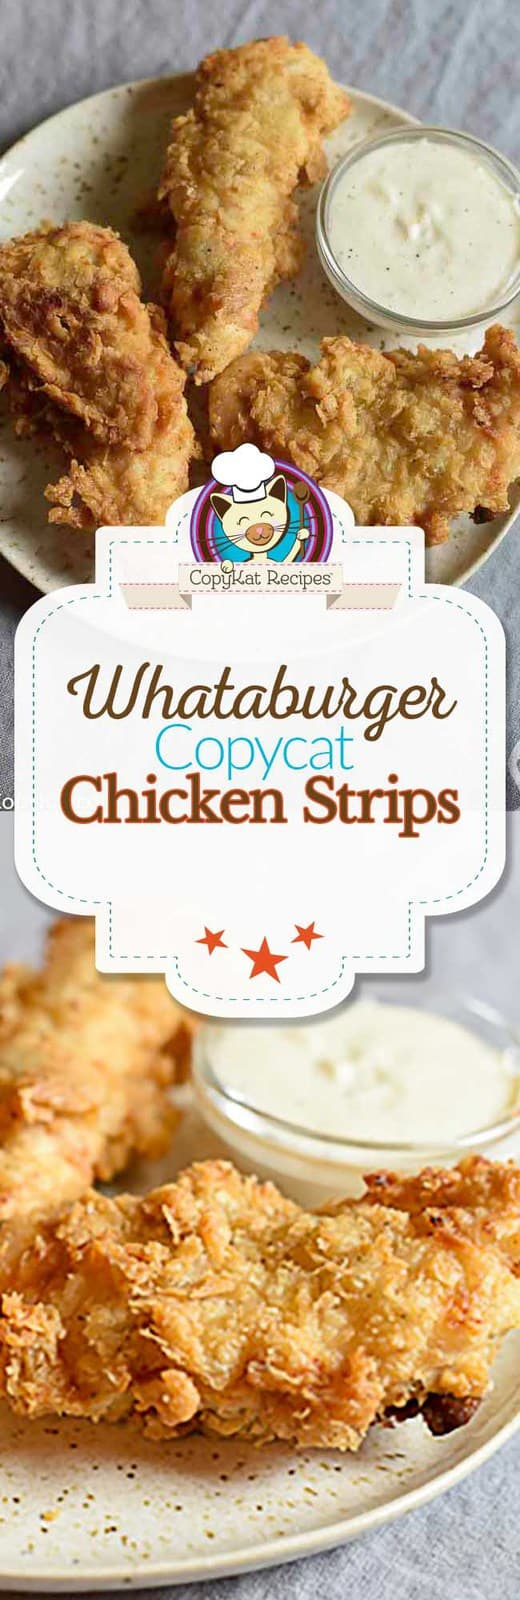 Make delicious chicken strips just like Whataburger does at home with this copycat recipe.